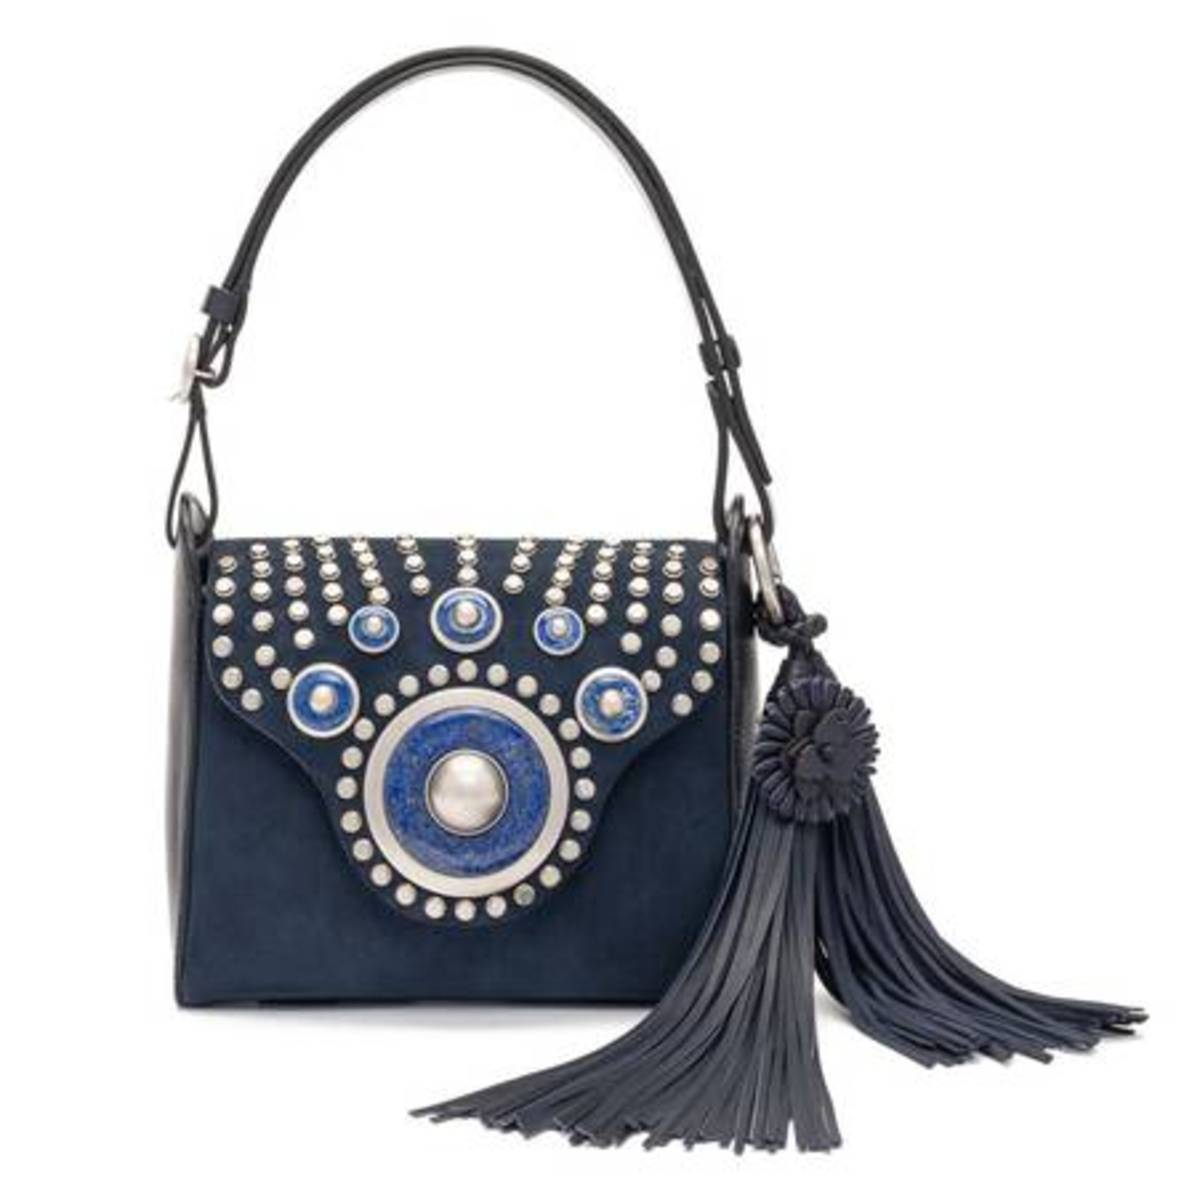 Tory-Burch_reference2